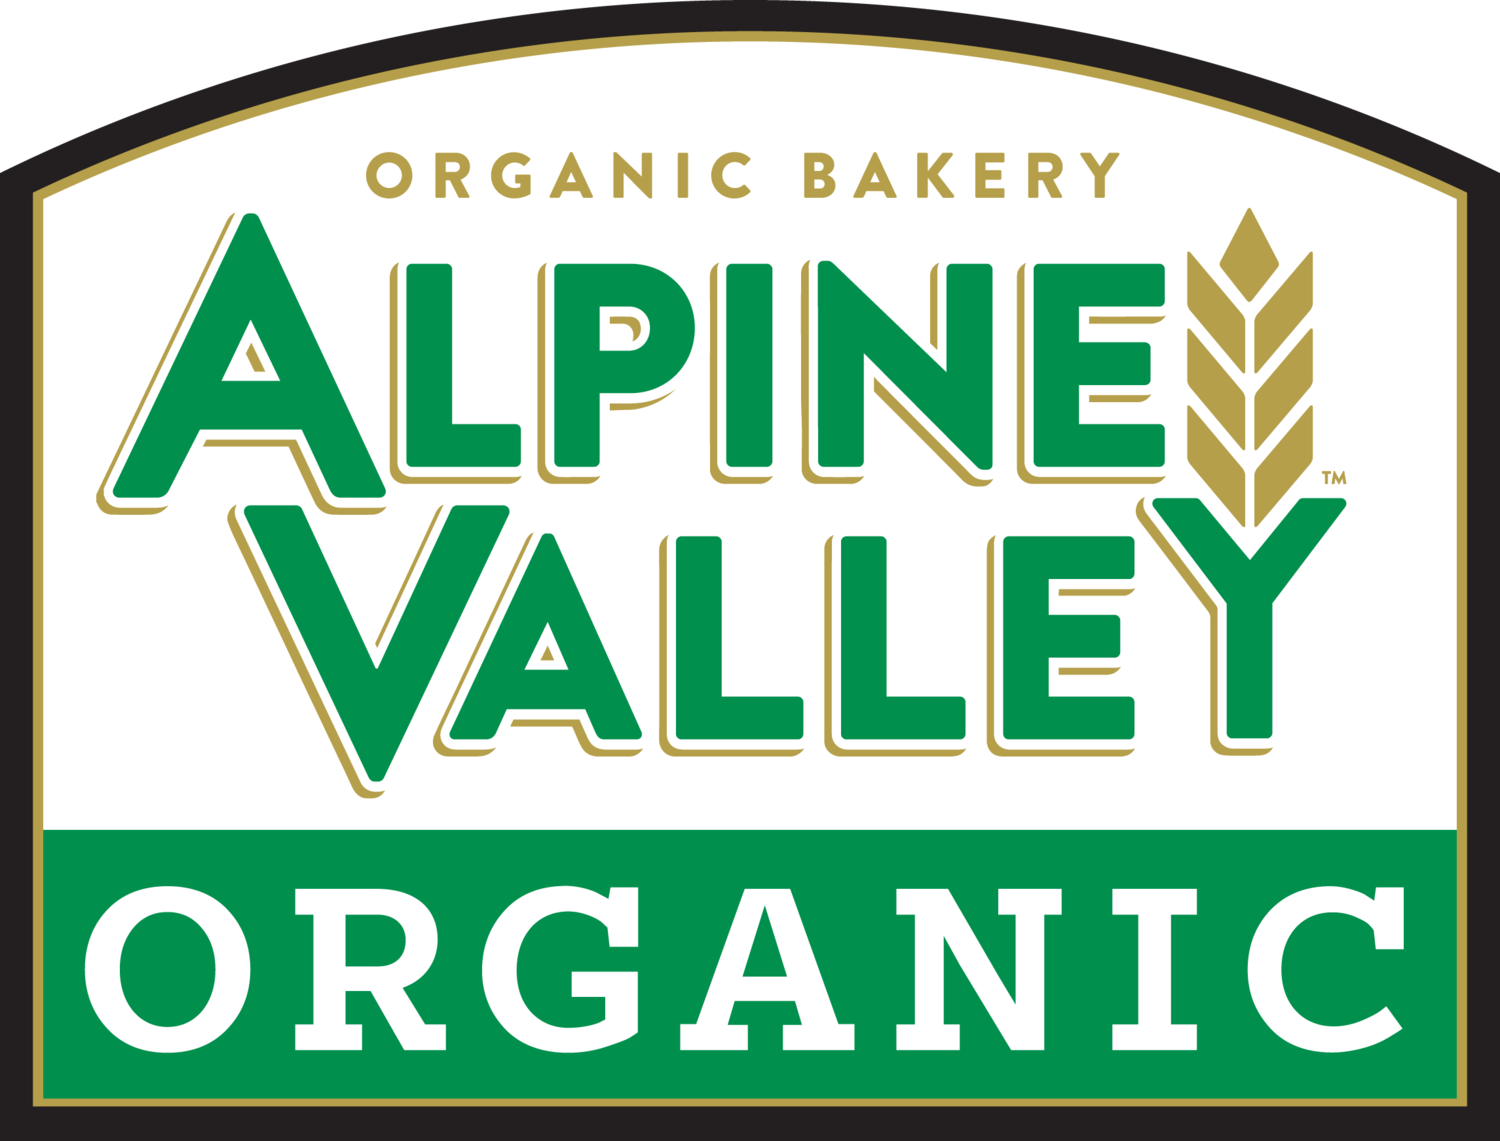 Alpine Valley Bakery